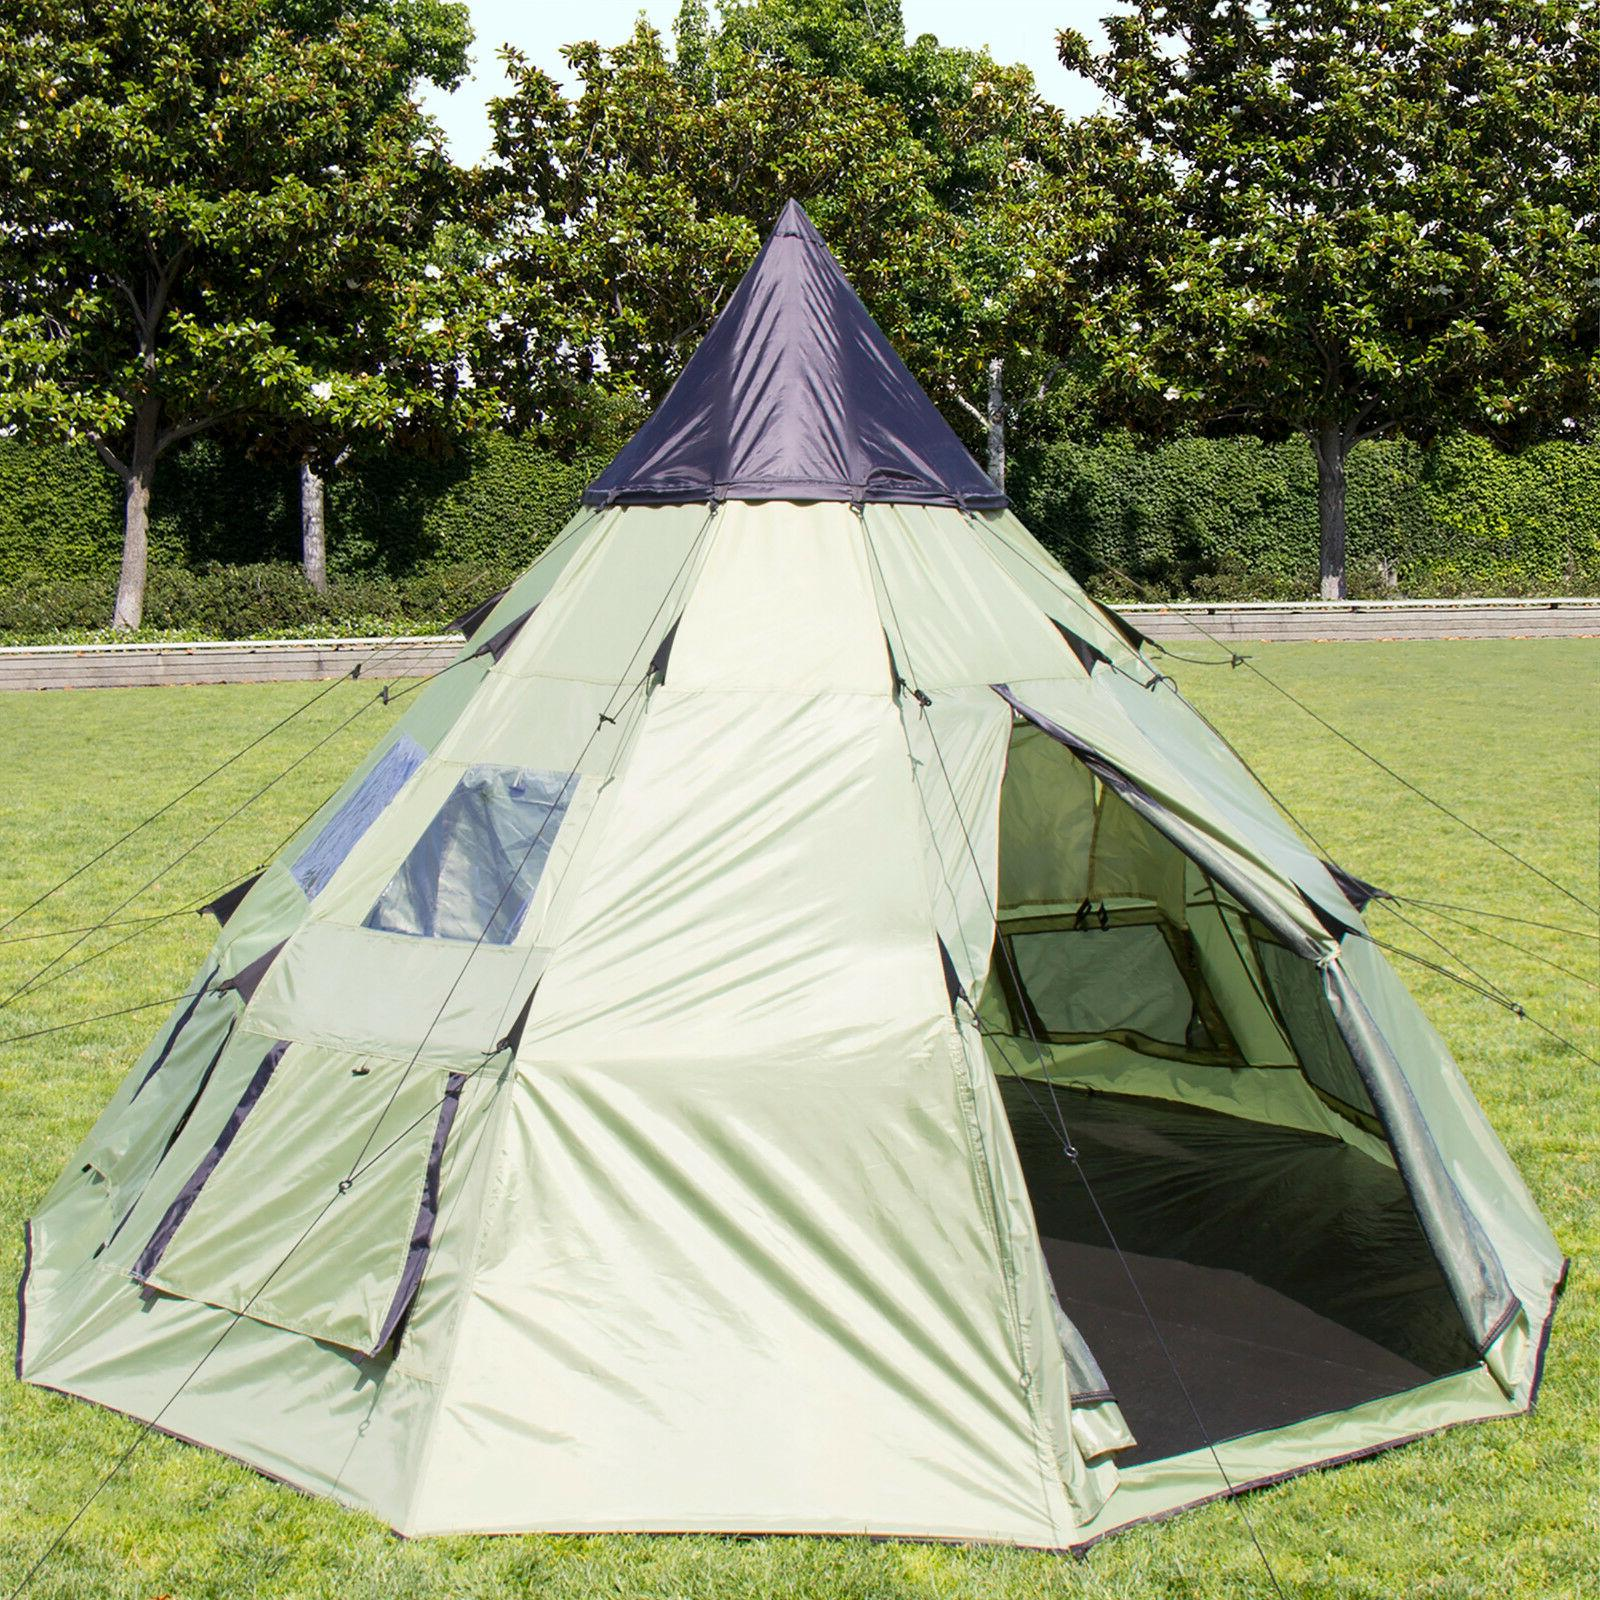 Large Shelter Hiking Equipment Gear